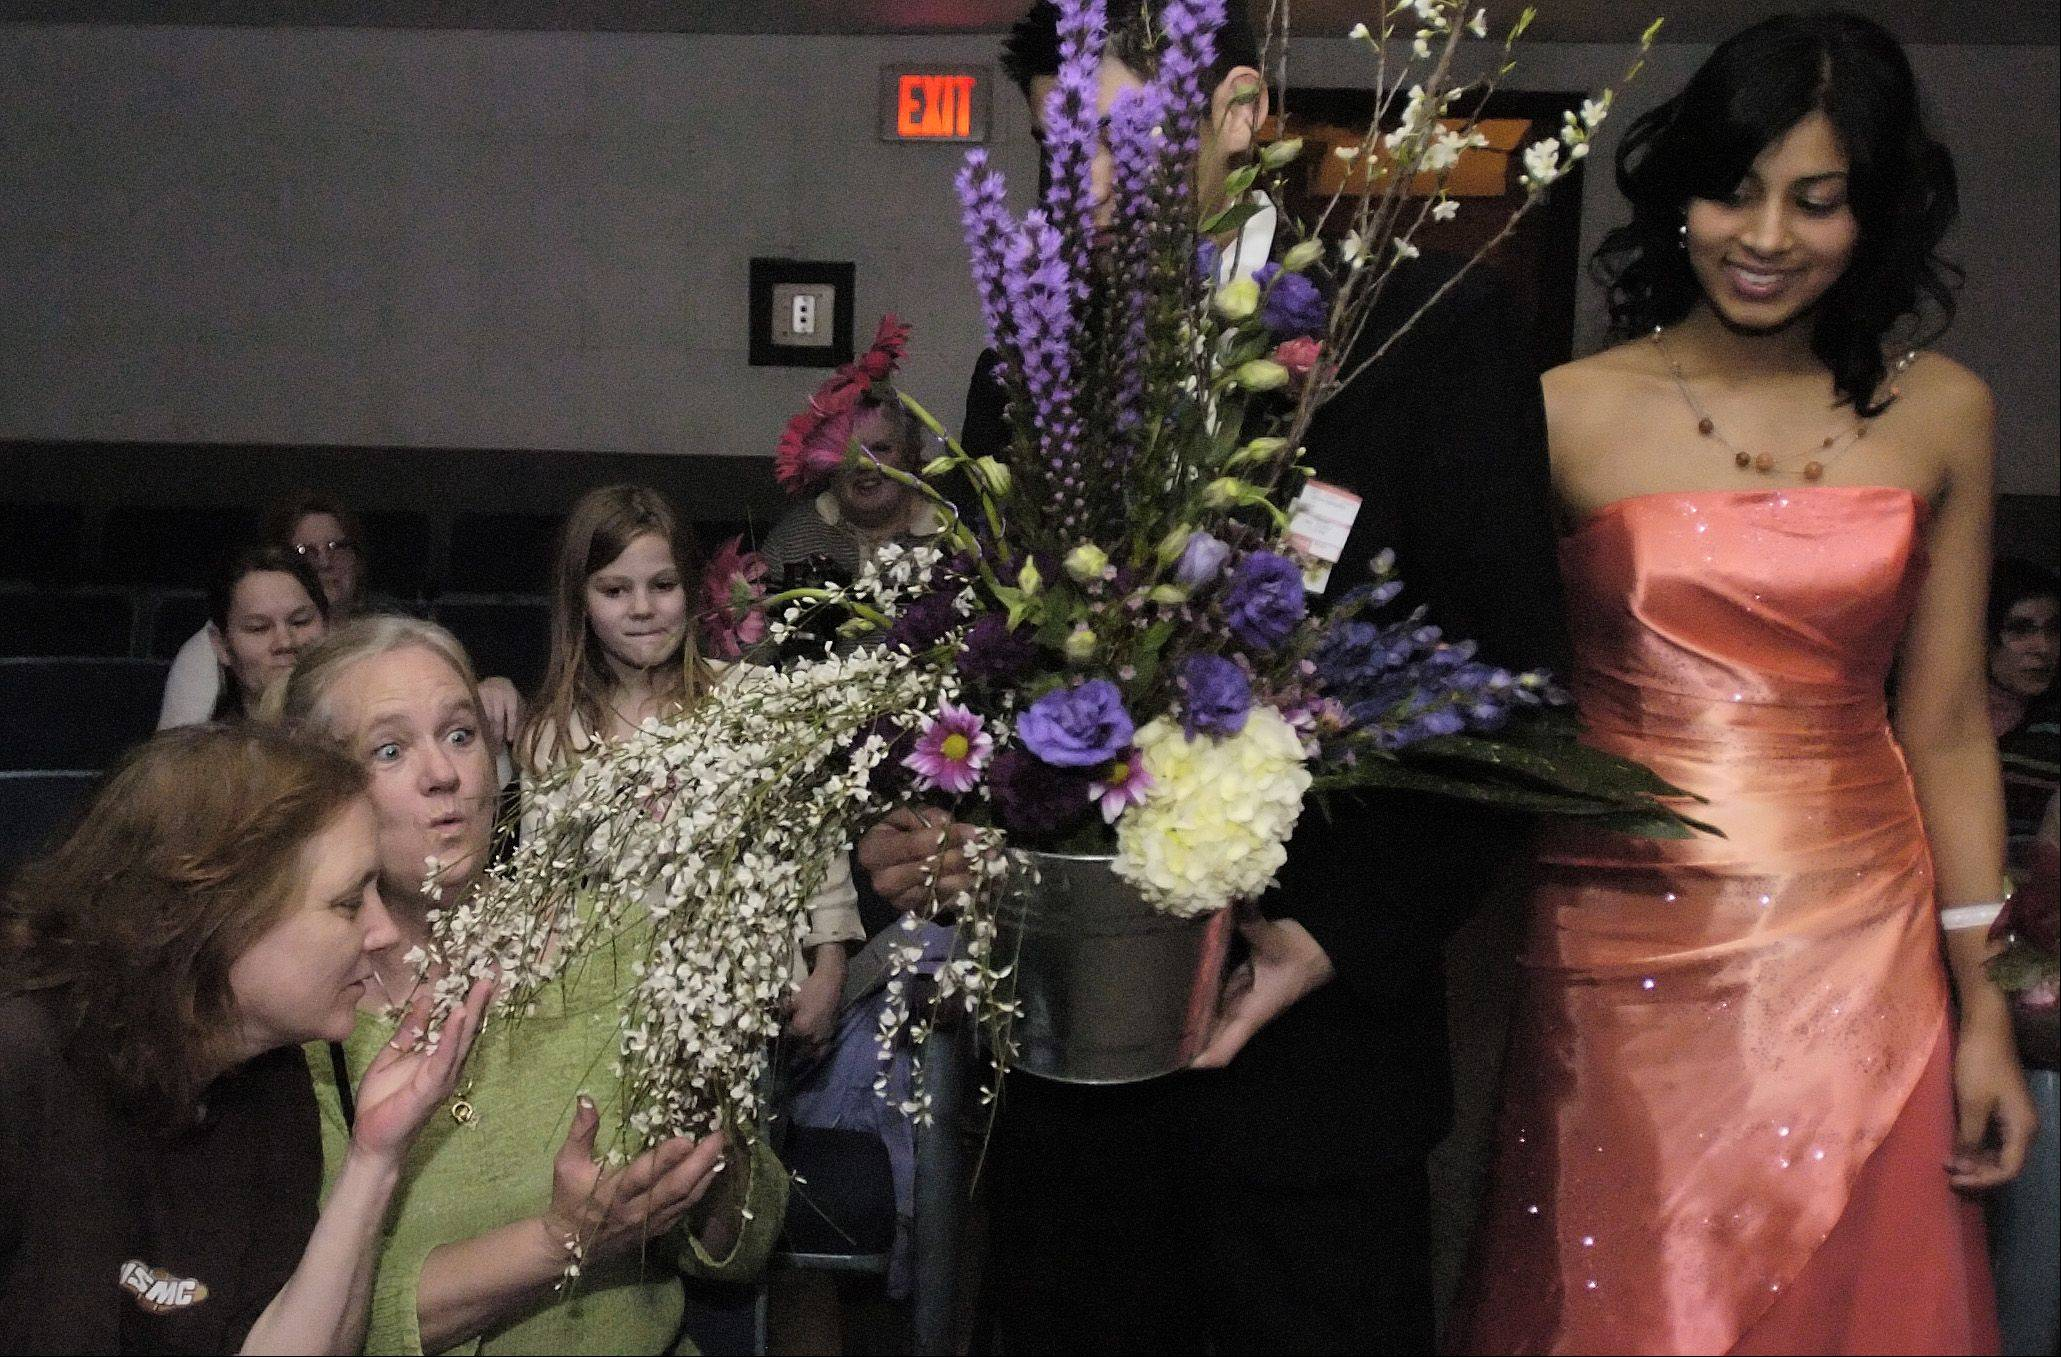 Students dressed in formalwear will parade floral creations around the audience at Addison Trail High School's 40th annual flower show Tuesday, March 13.